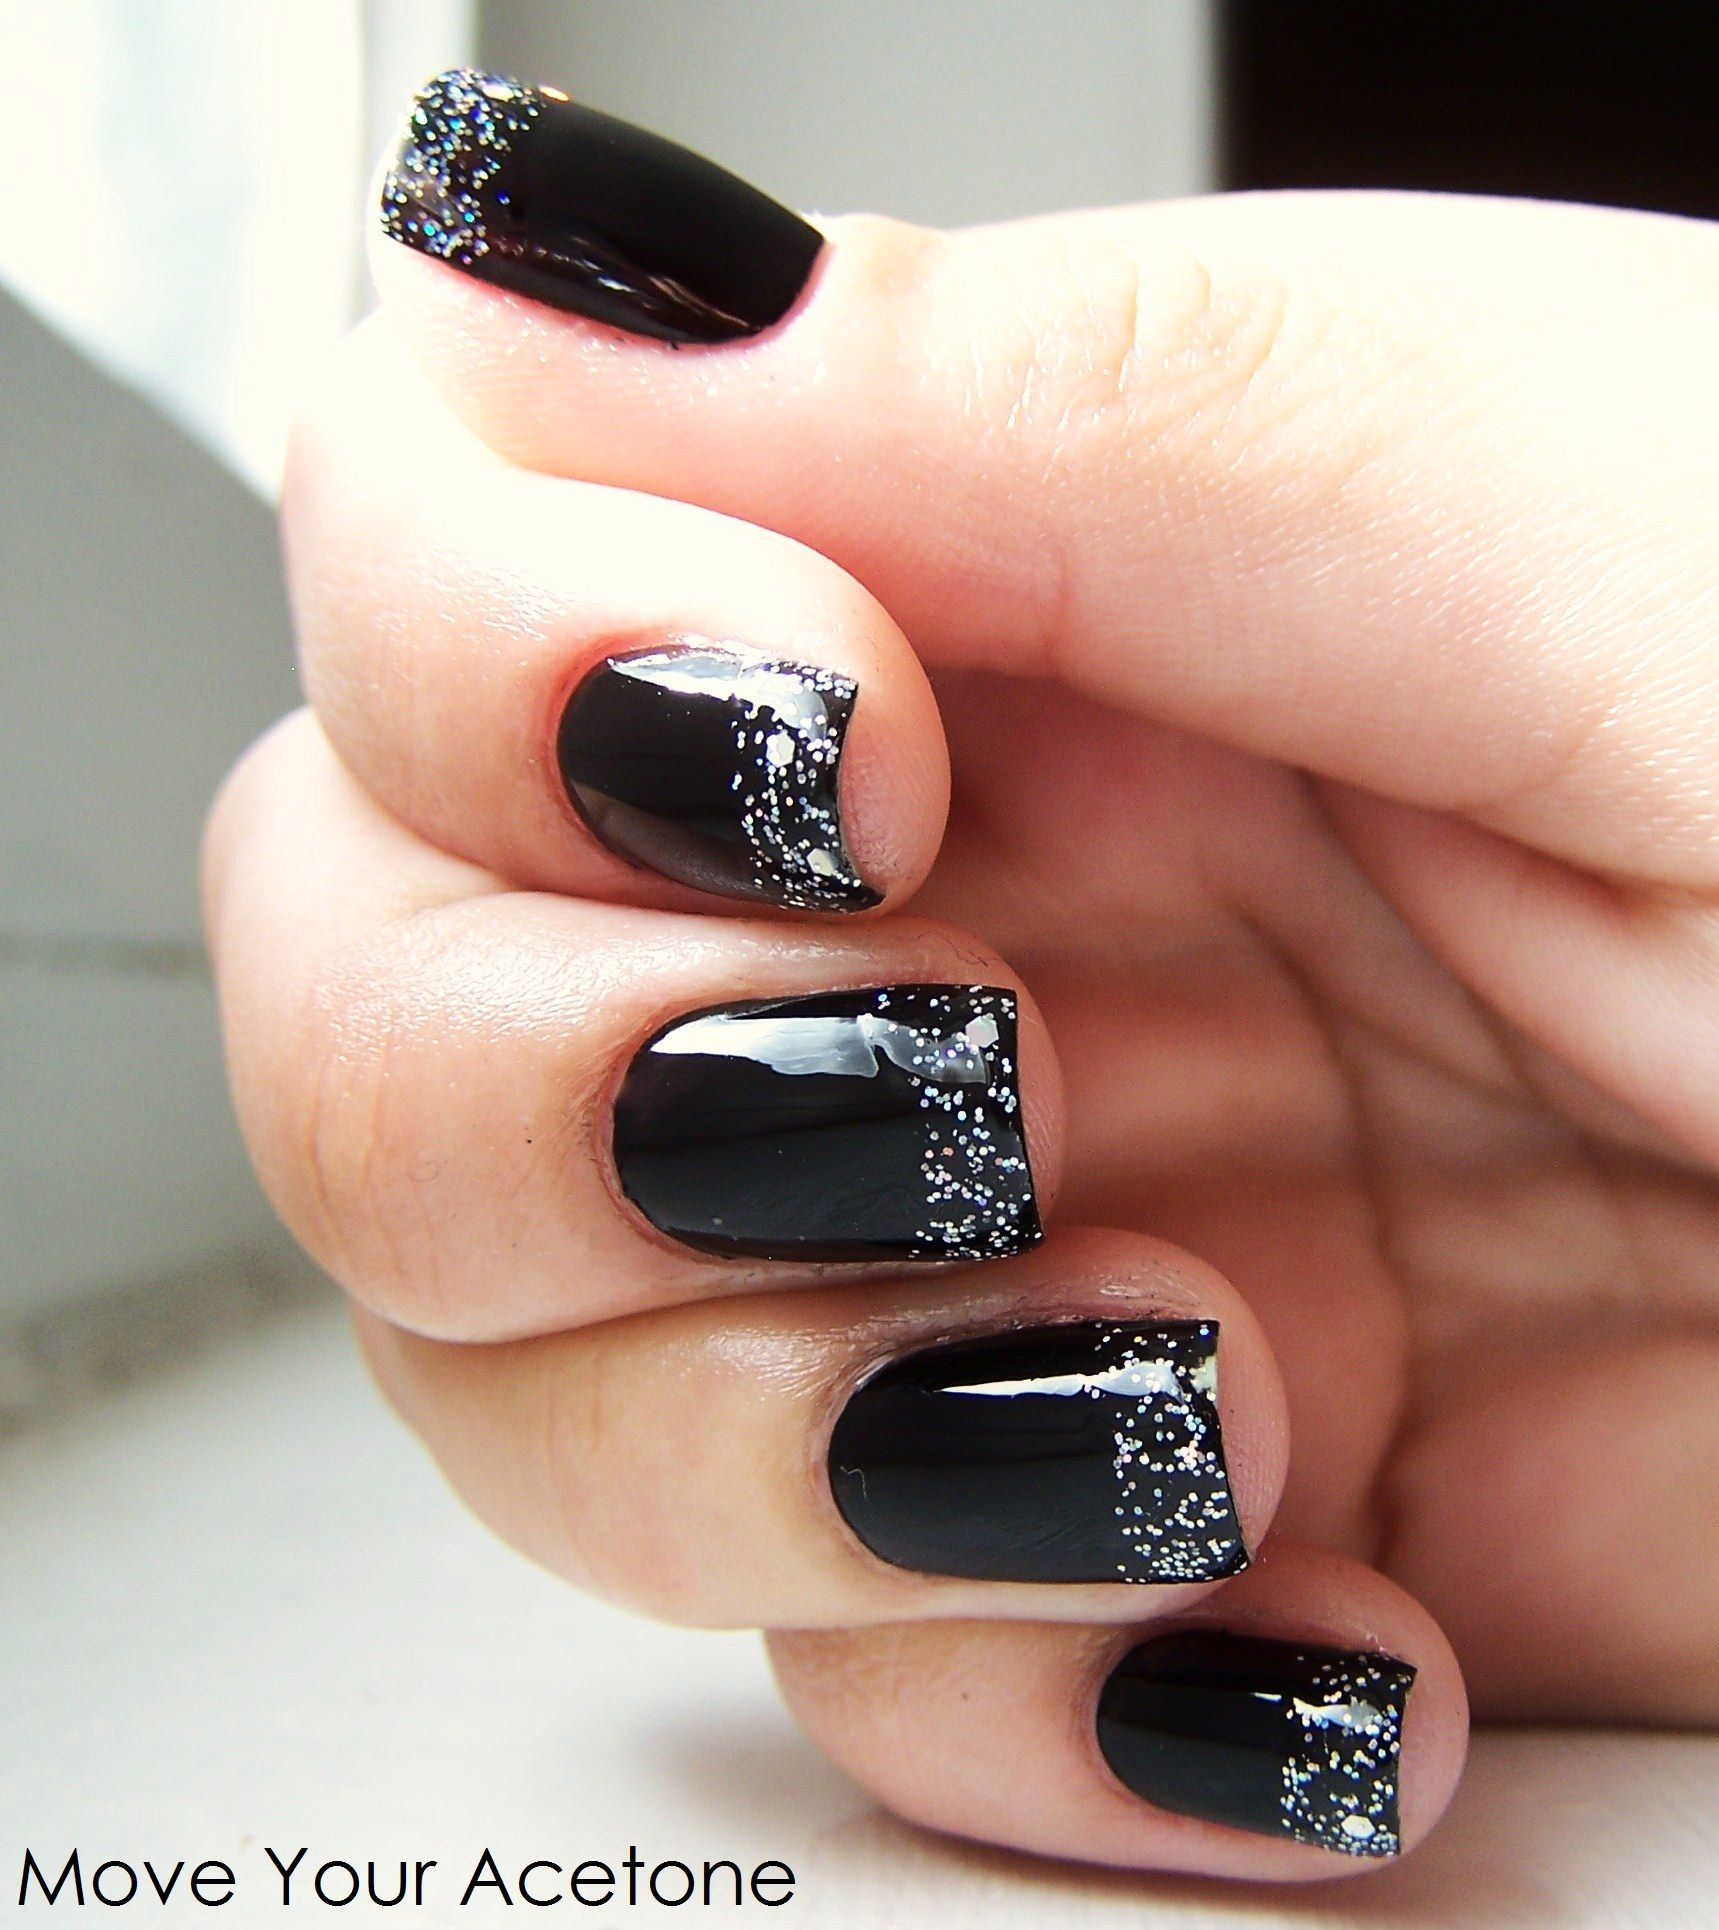 French manicure, black with glitter tips | Nails | Pinterest ...